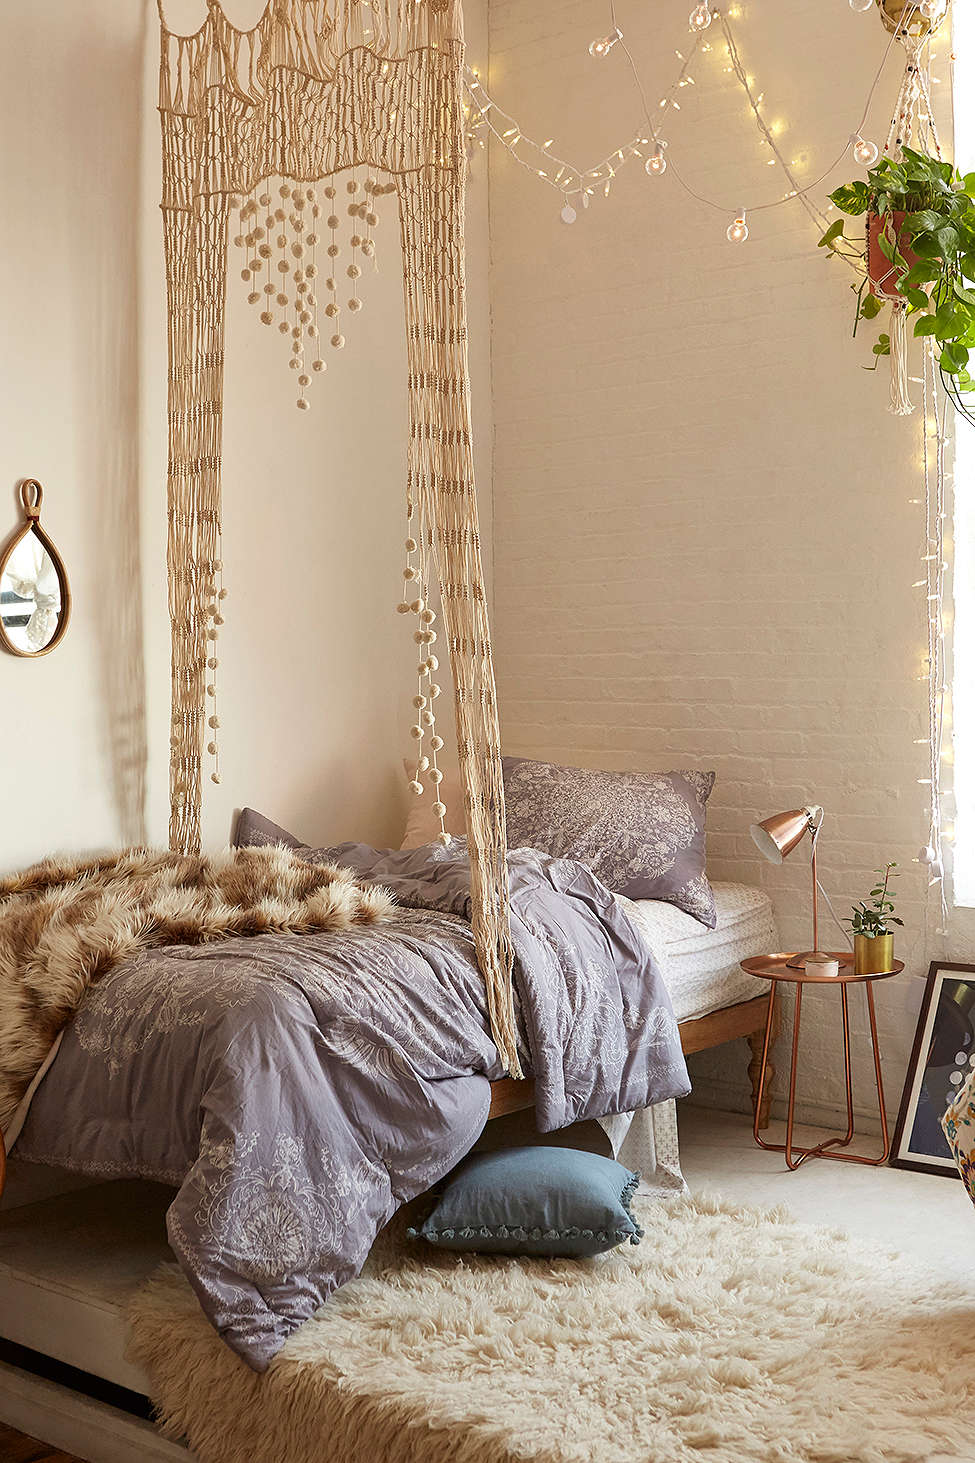 5 Dreamy College Campus Bedrooms Daily Dream Decor